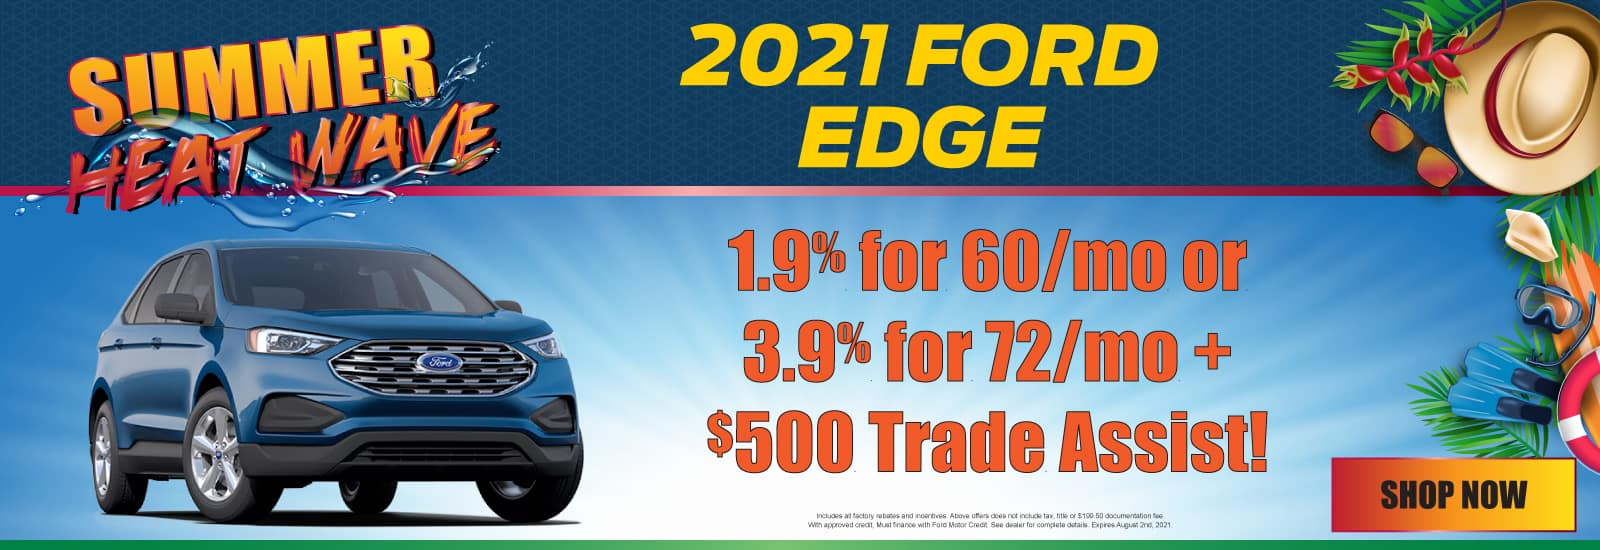 July2021-Ford-Edge-Web-Banner-1600×550